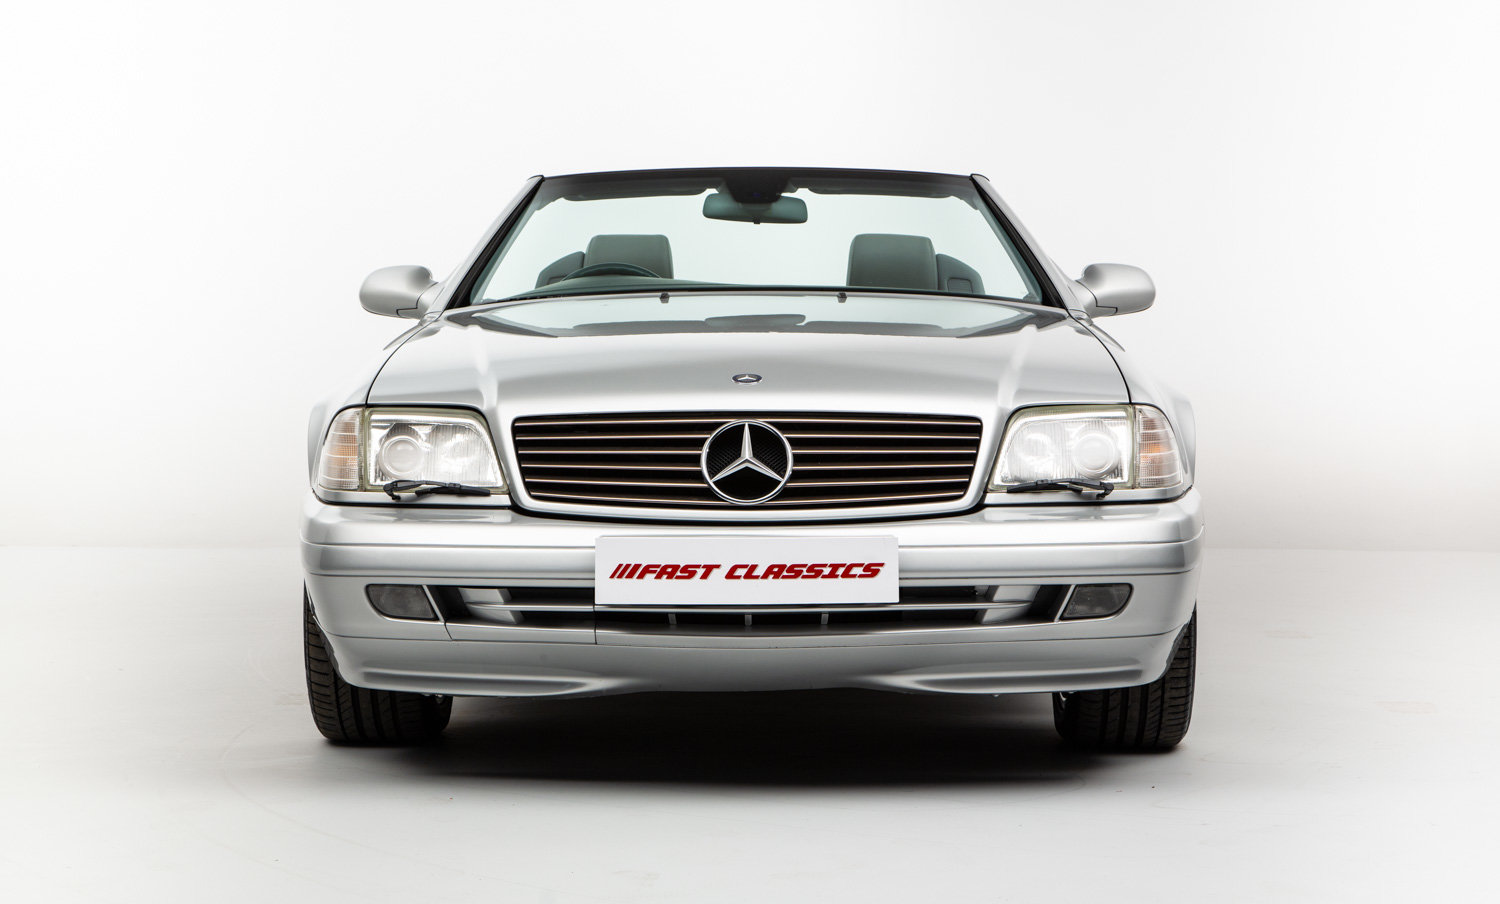 1999 MERCEDES SL320  For Sale (picture 3 of 22)